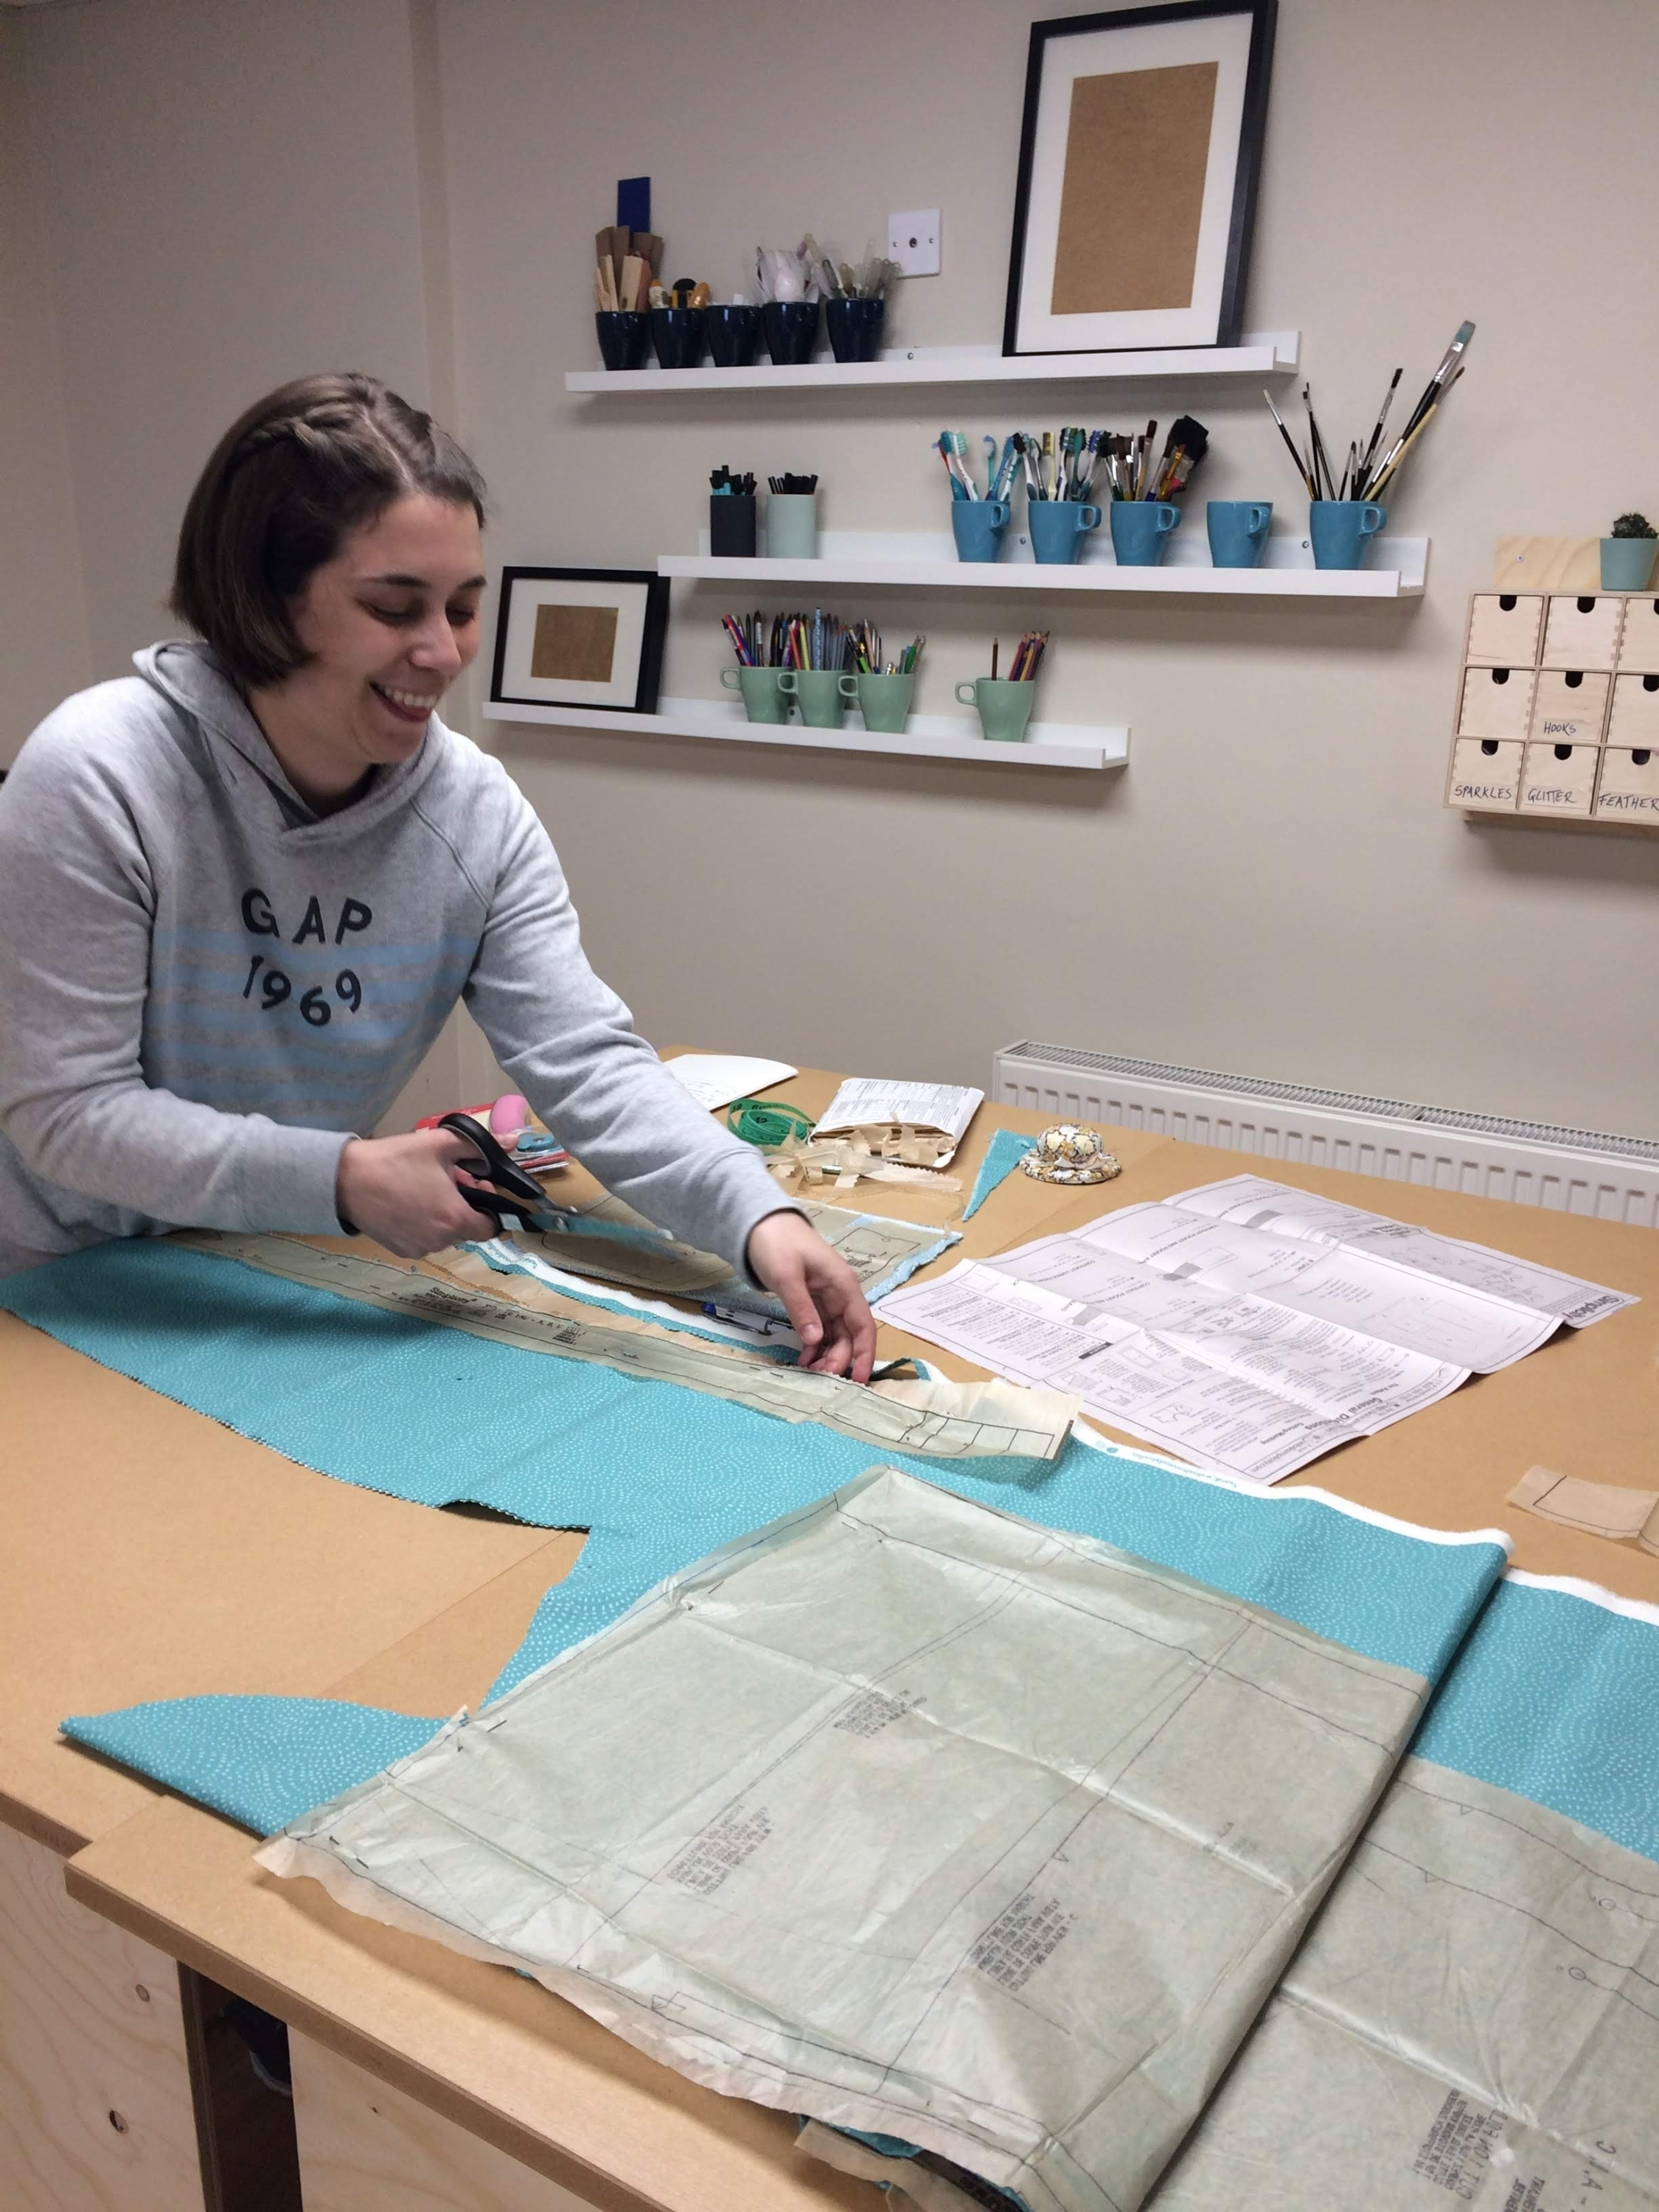 Rachel sewing course Dress Making with Gill Collinson at Cambridge Art Makers